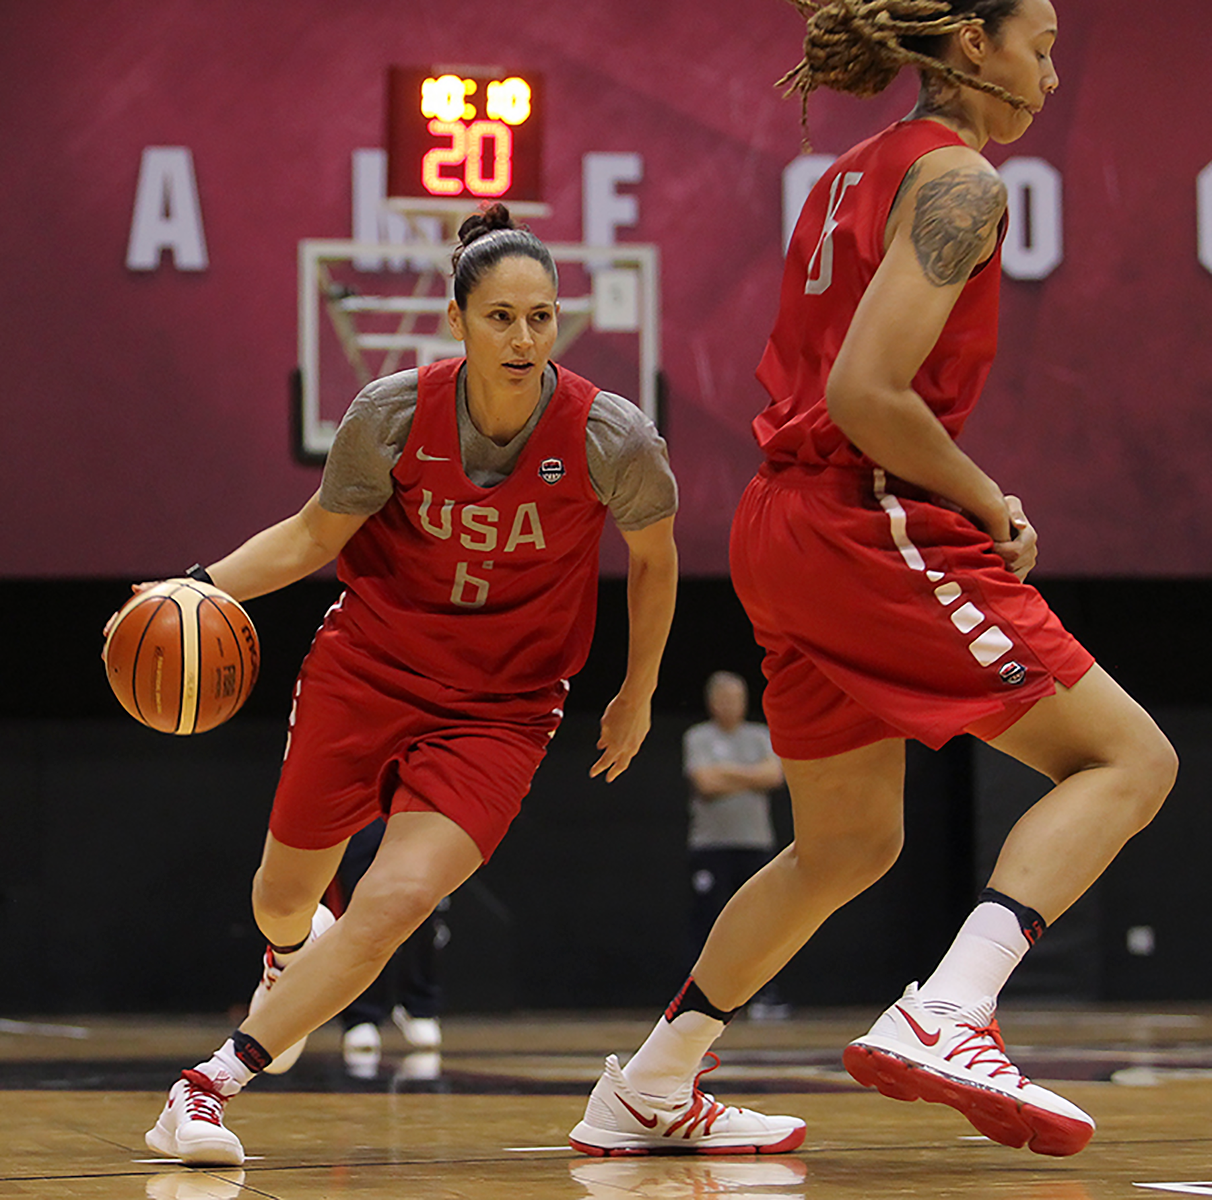 Sue playing with Team USA.